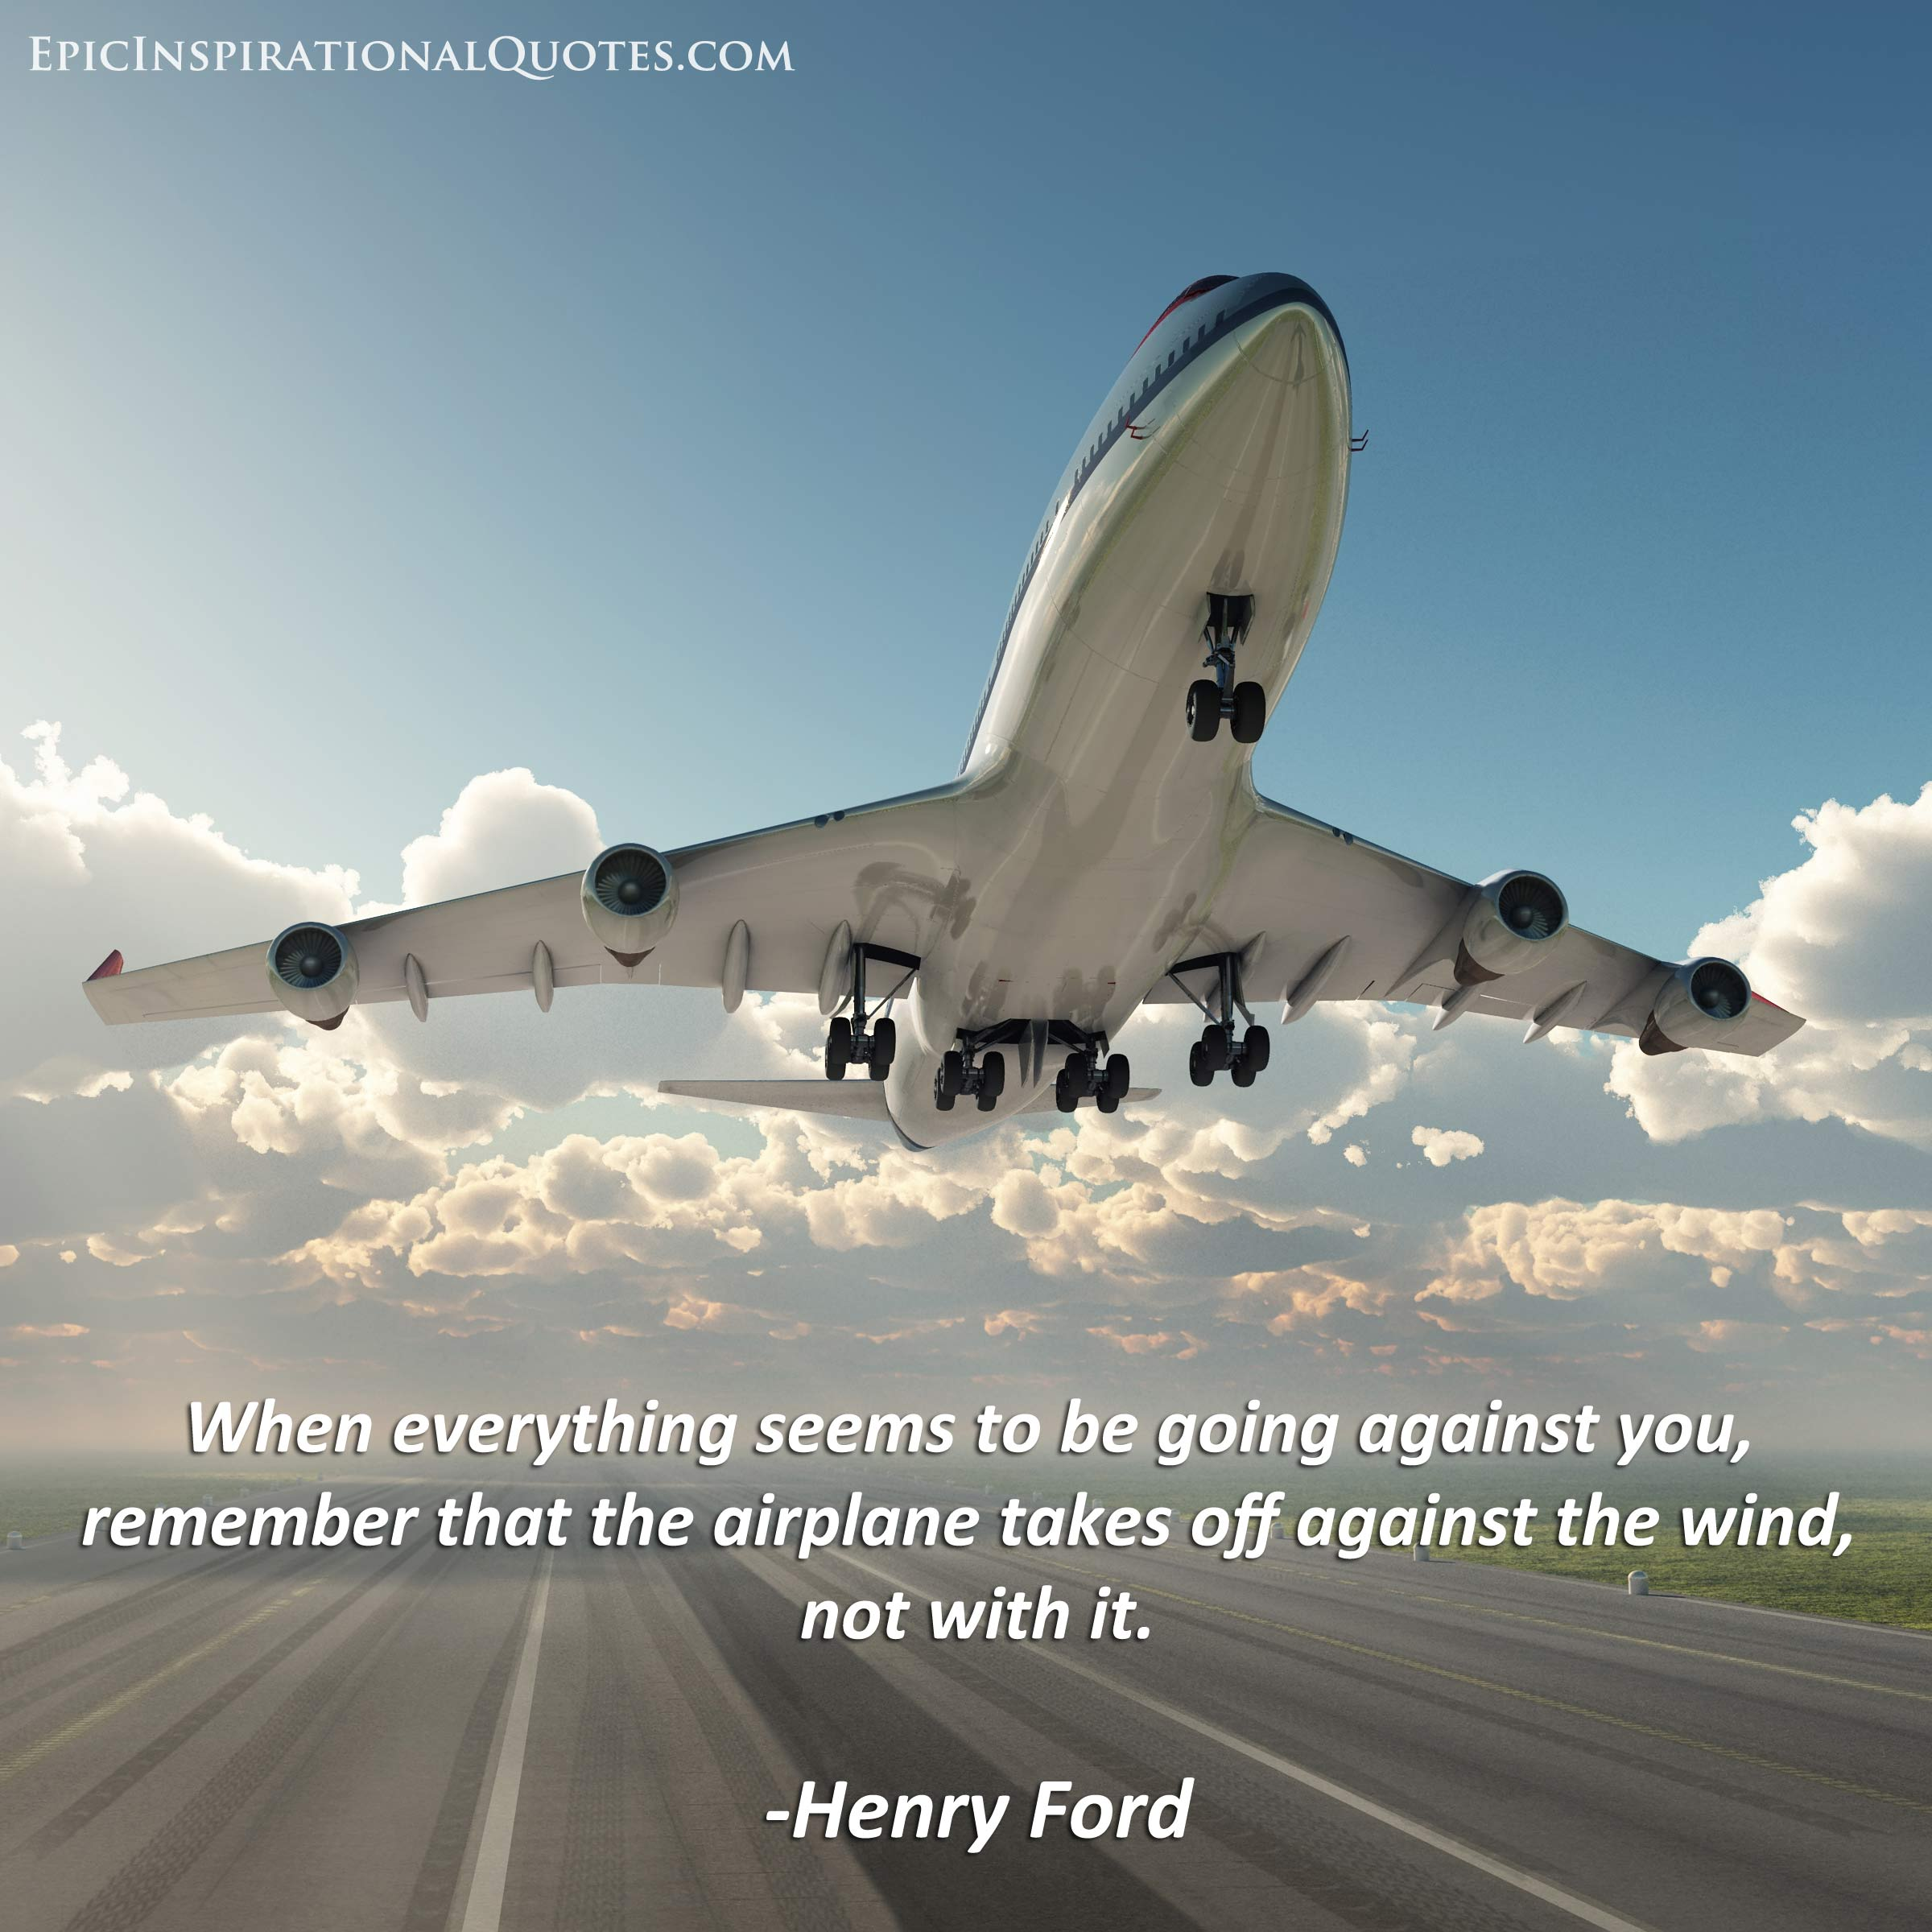 Bill Utter Ford >> Inspirational Quotes About Airplanes. QuotesGram